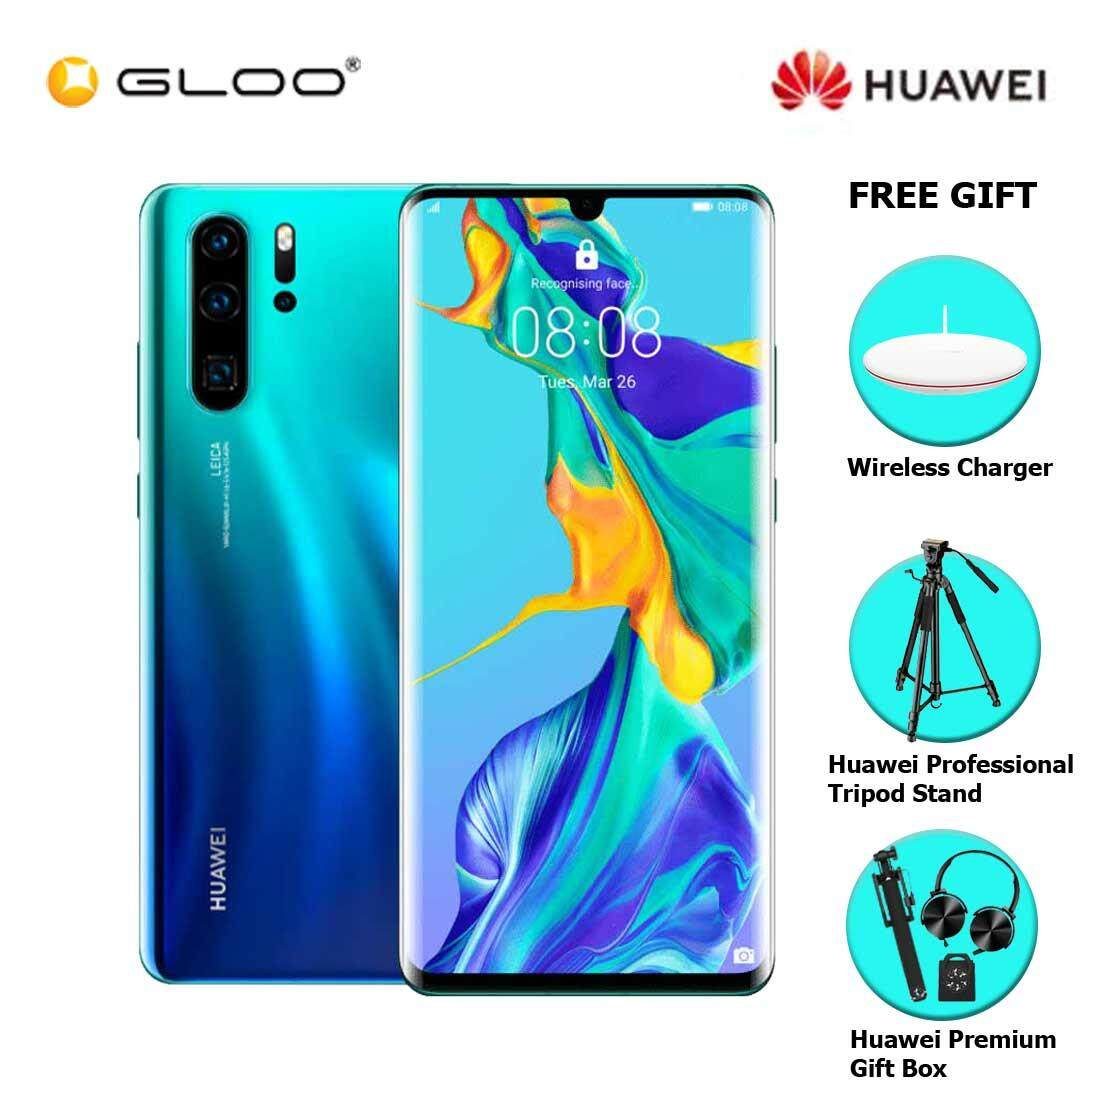 Huawei P30 Pro 8GB+256GB Aurora + FREE Huawei Wireless Charges CP60 6901443259328,Huawei Professional Tripod Stand,Premium Gift Box (Headset/Selfie Stick/iRing)